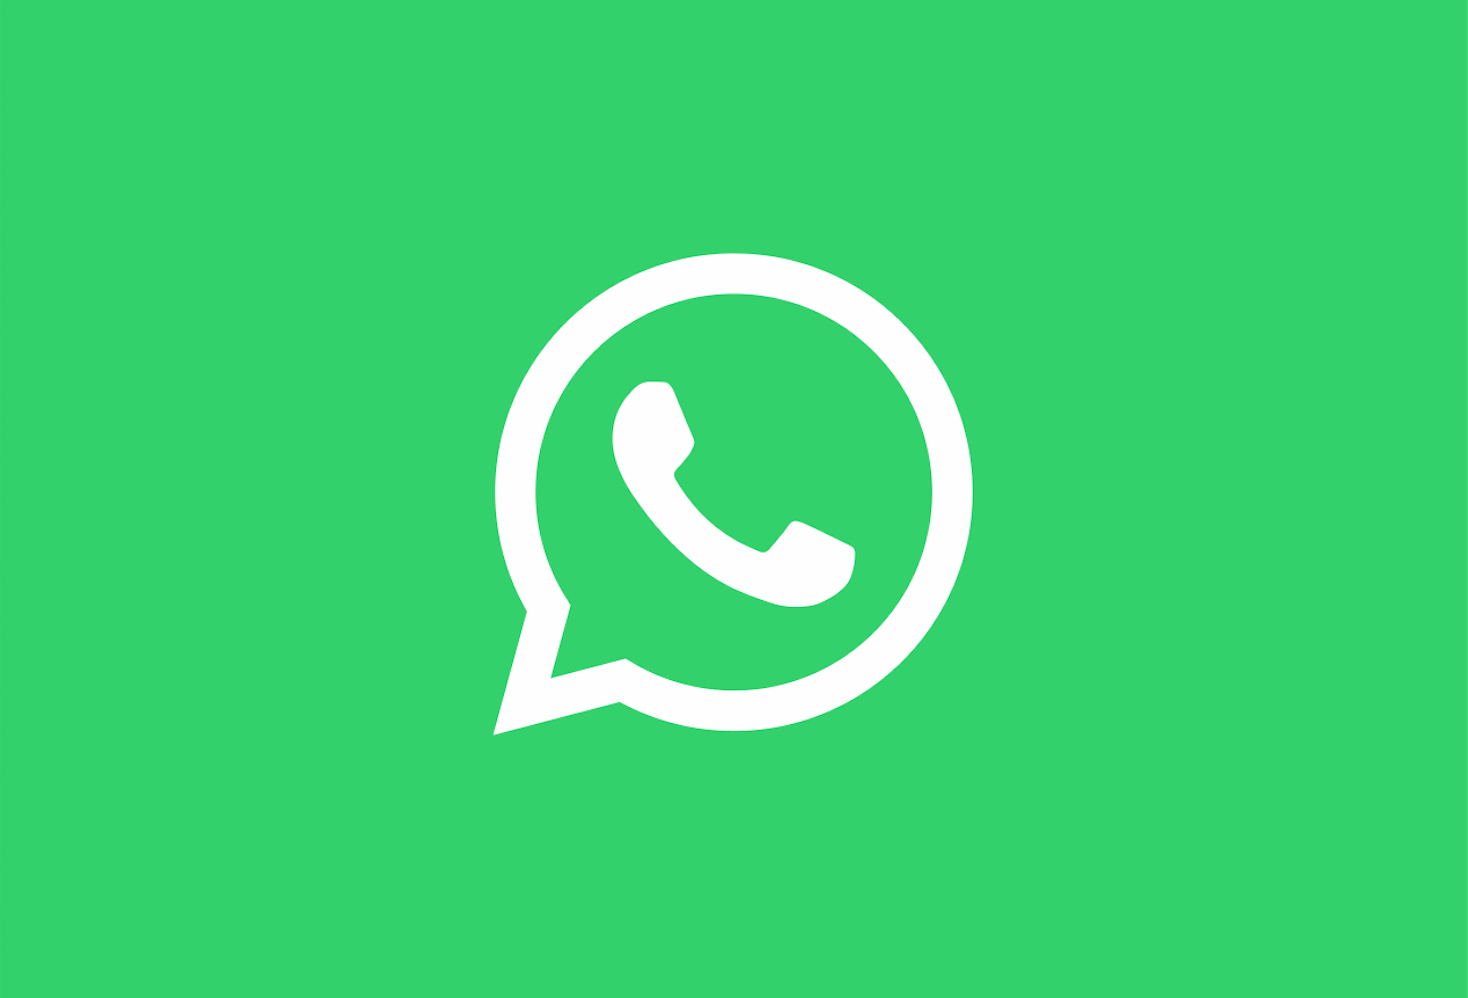 Whatsapp Re Introduces Text Statuses After Replacing It With